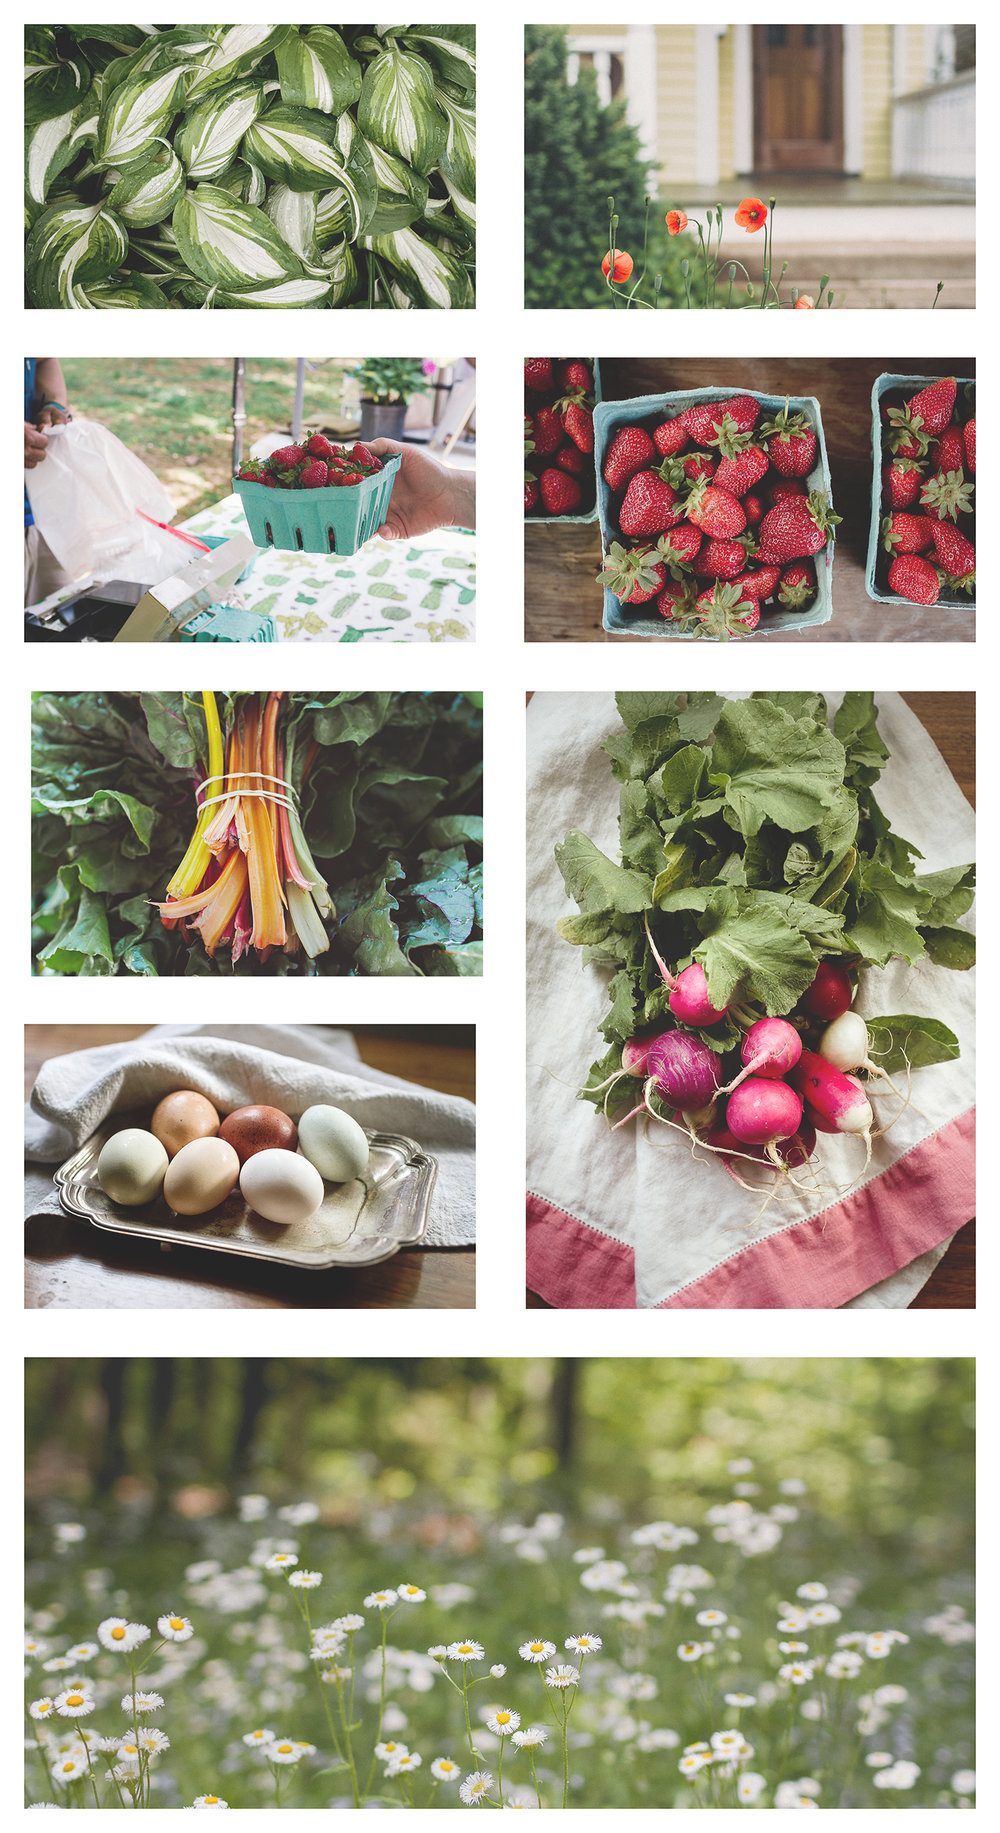 FarmersMarket_Collage_forBlog.jpg